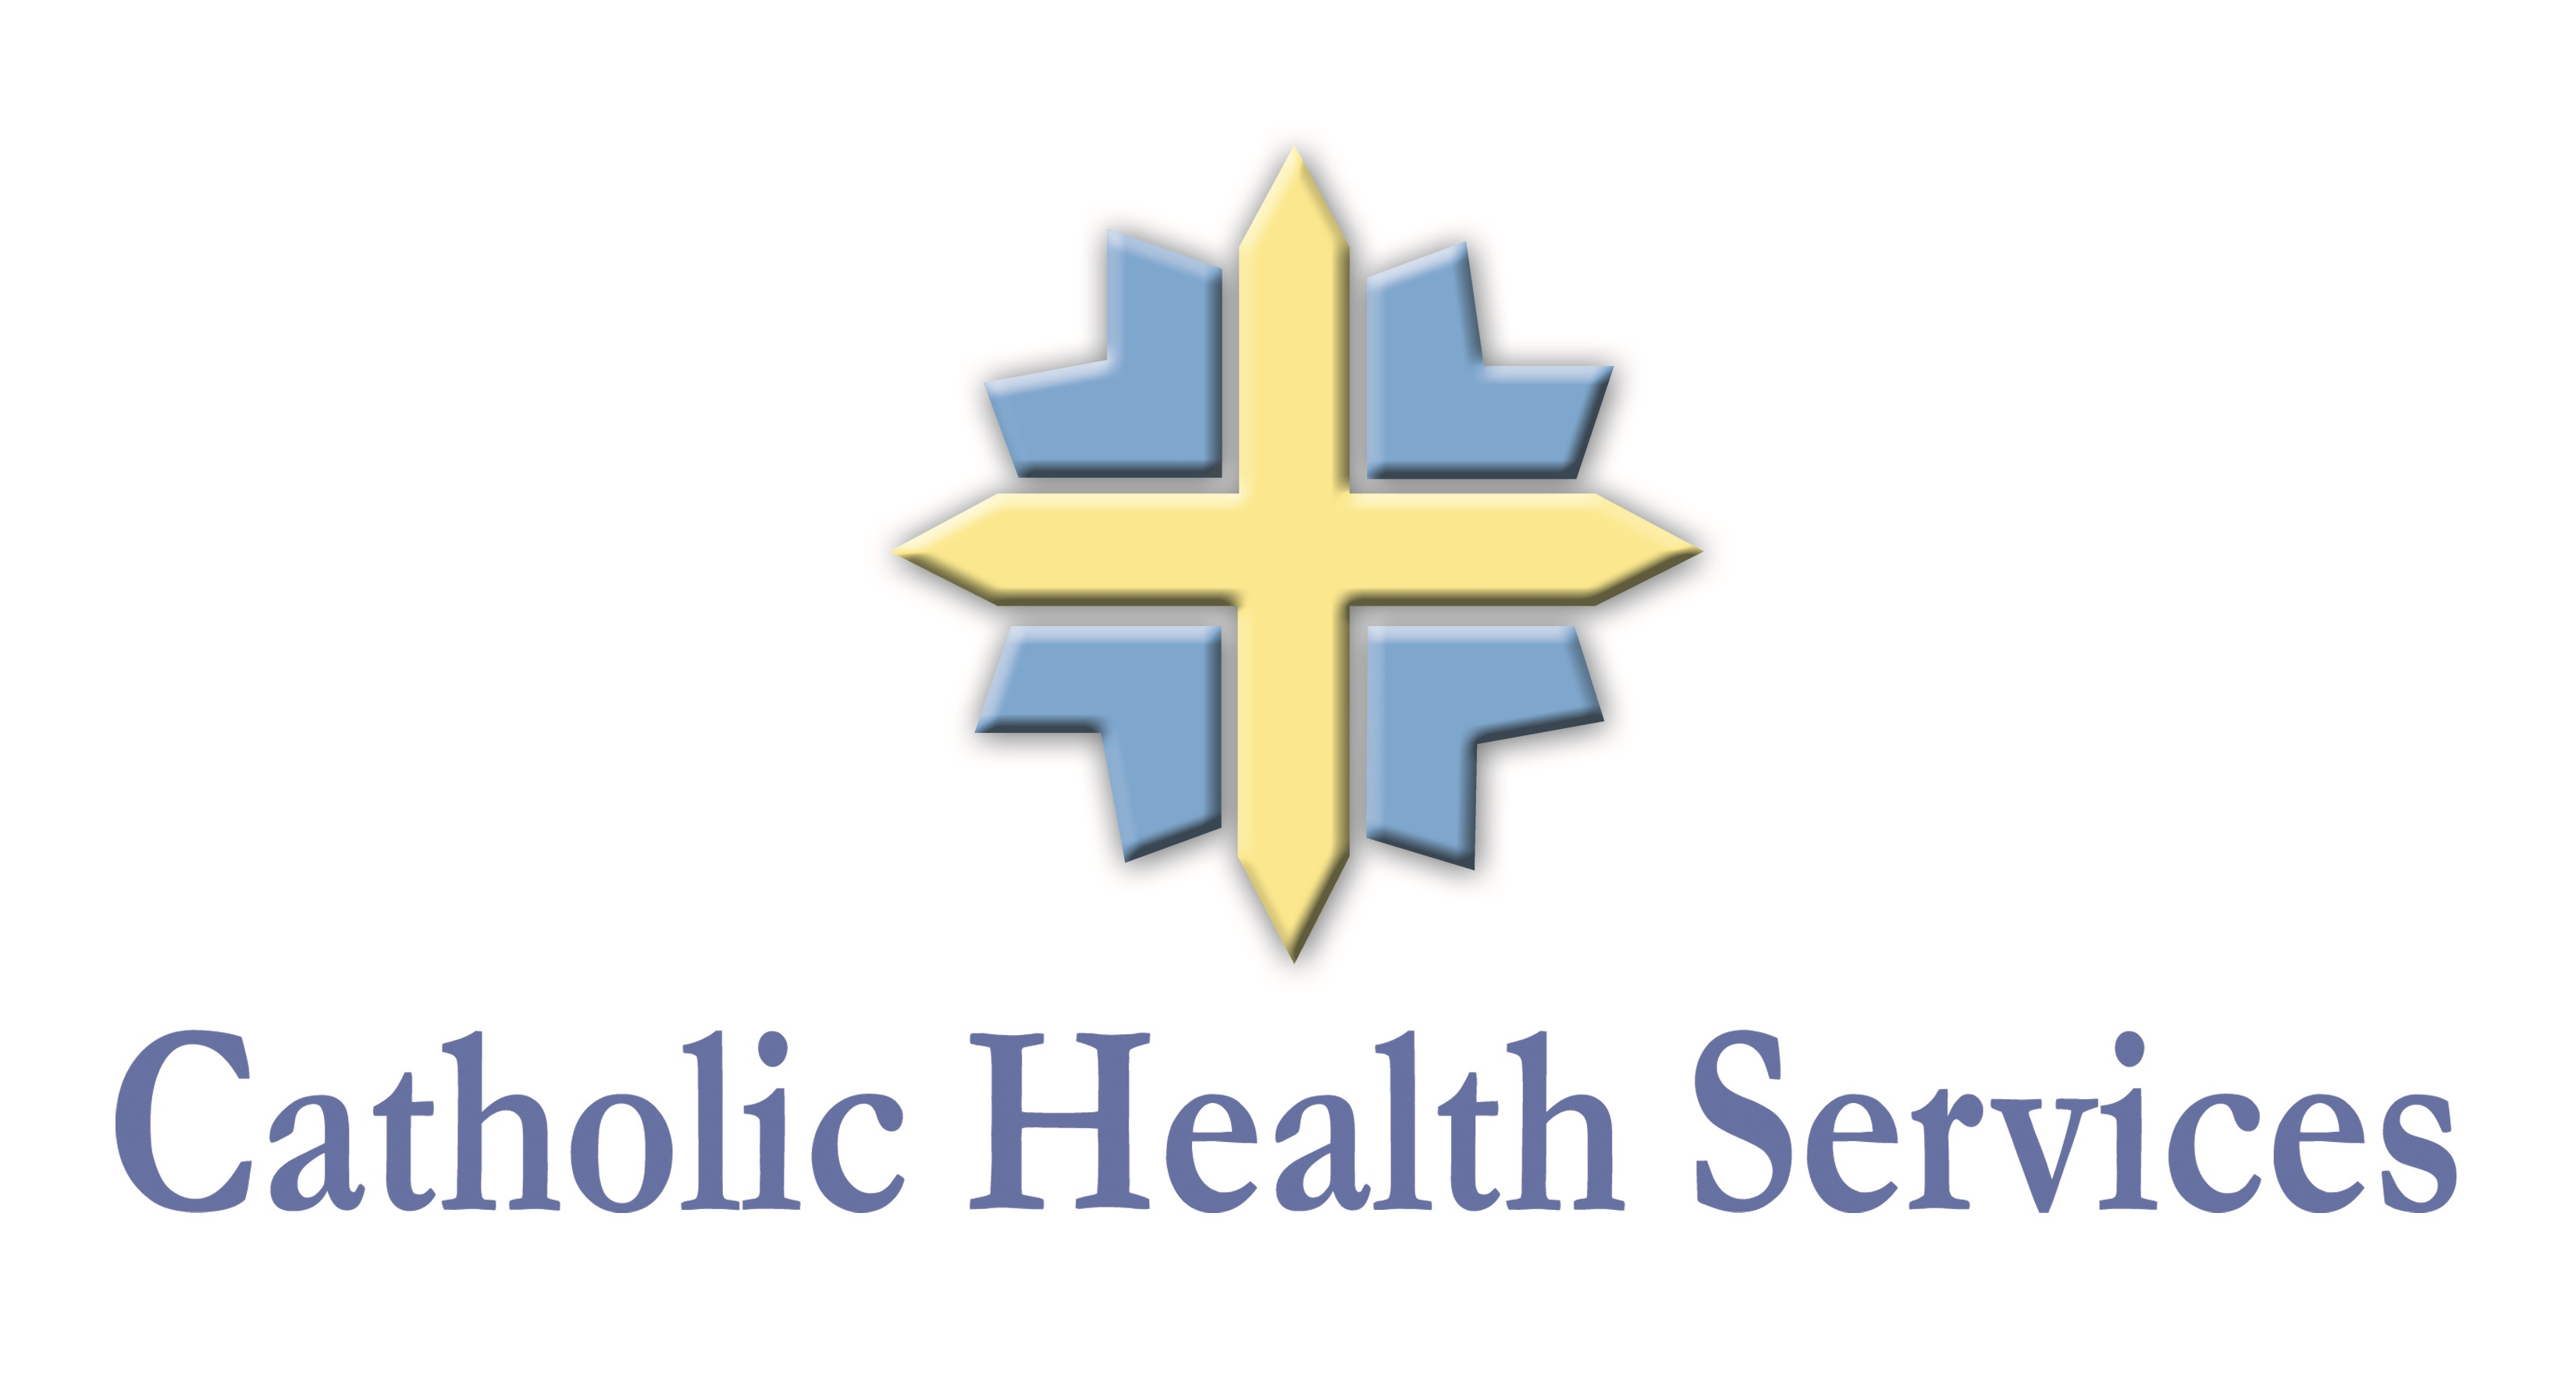 Catholic Health Services